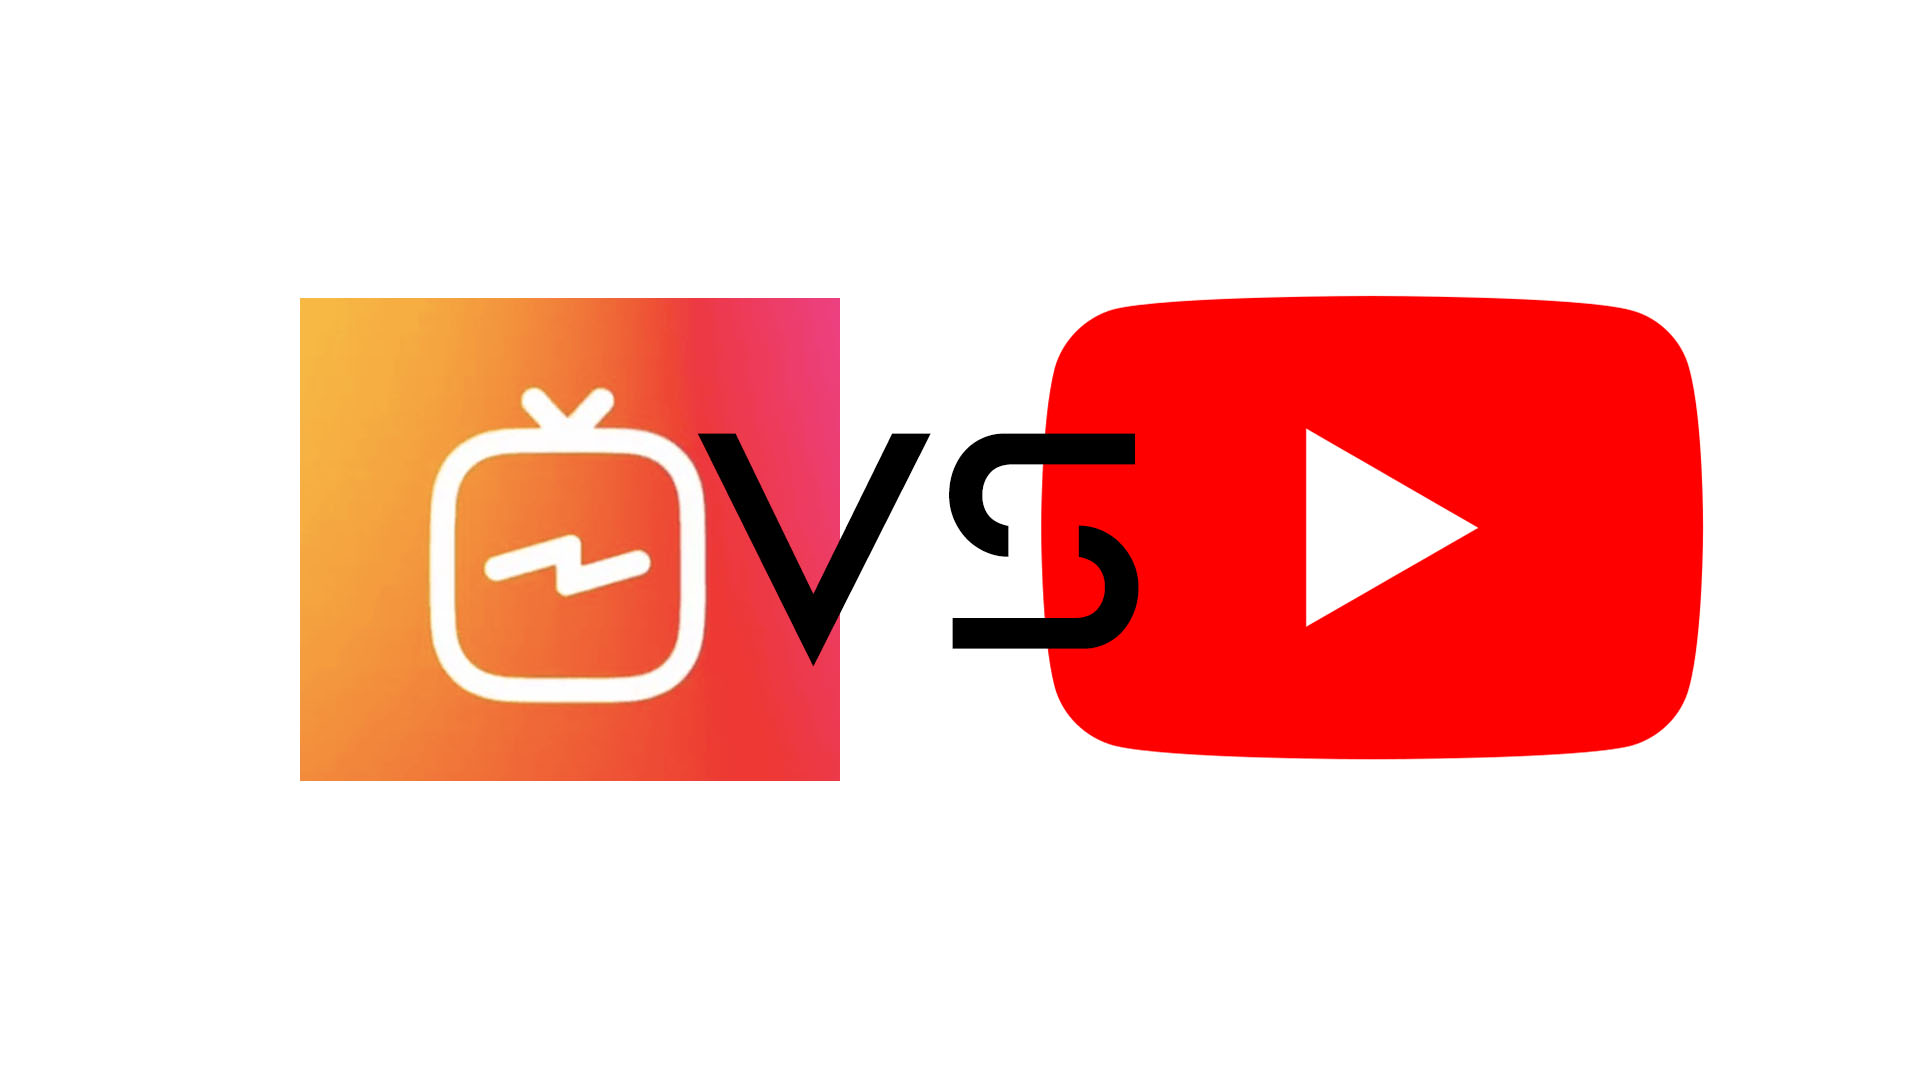 Instagram tv is competing with Youtube